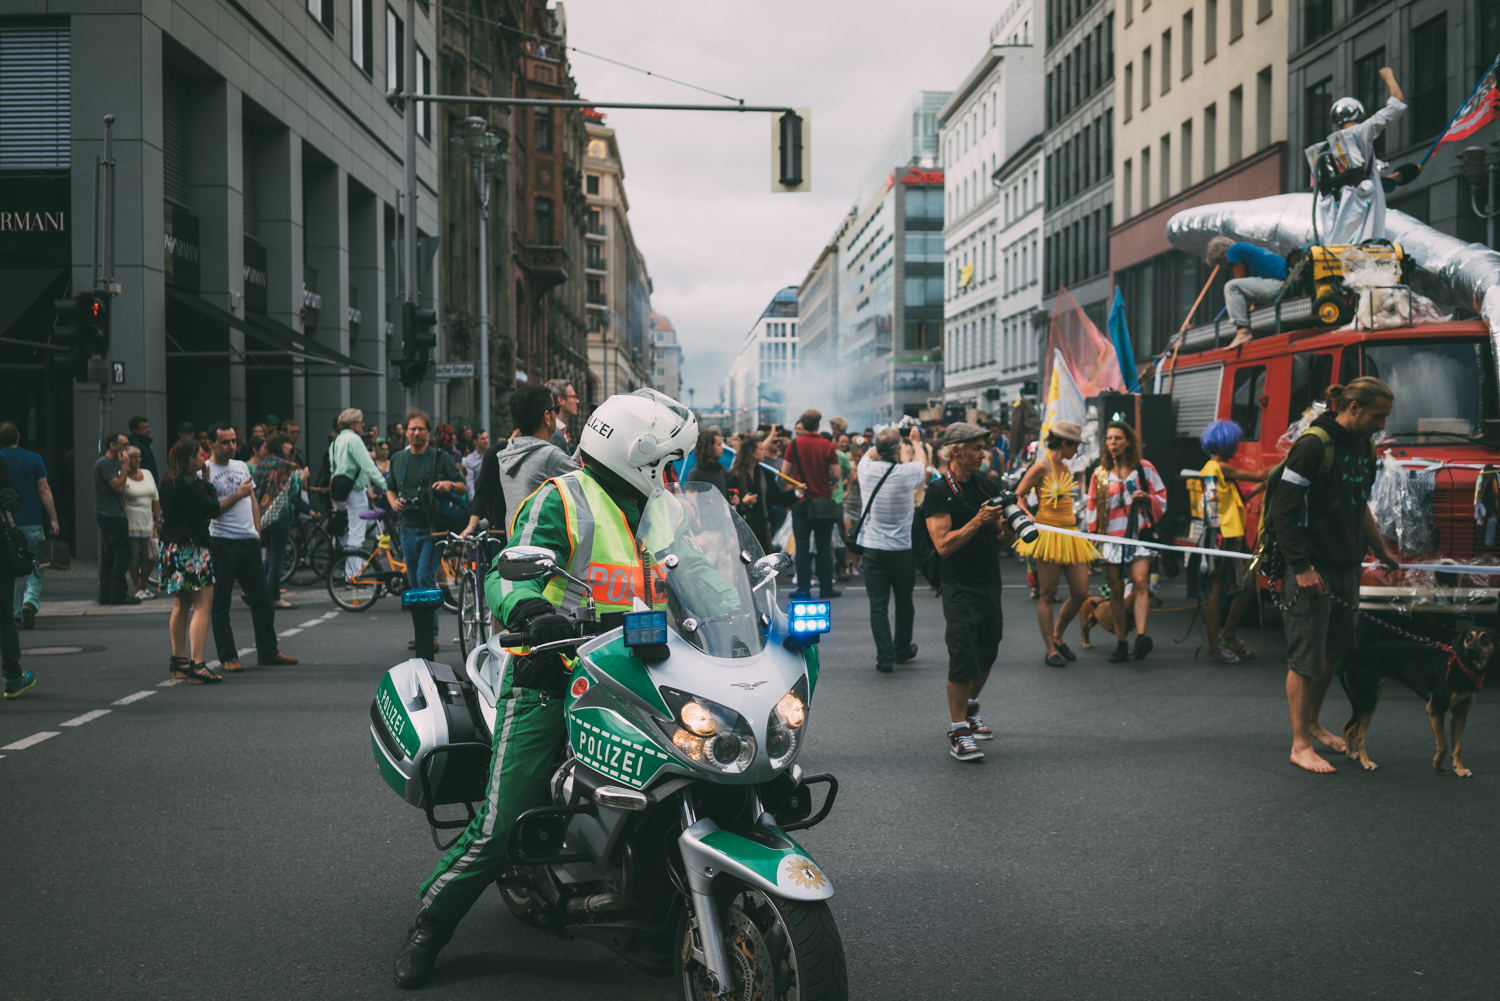 Police escorted the rally as it went up Freidrichstrafze